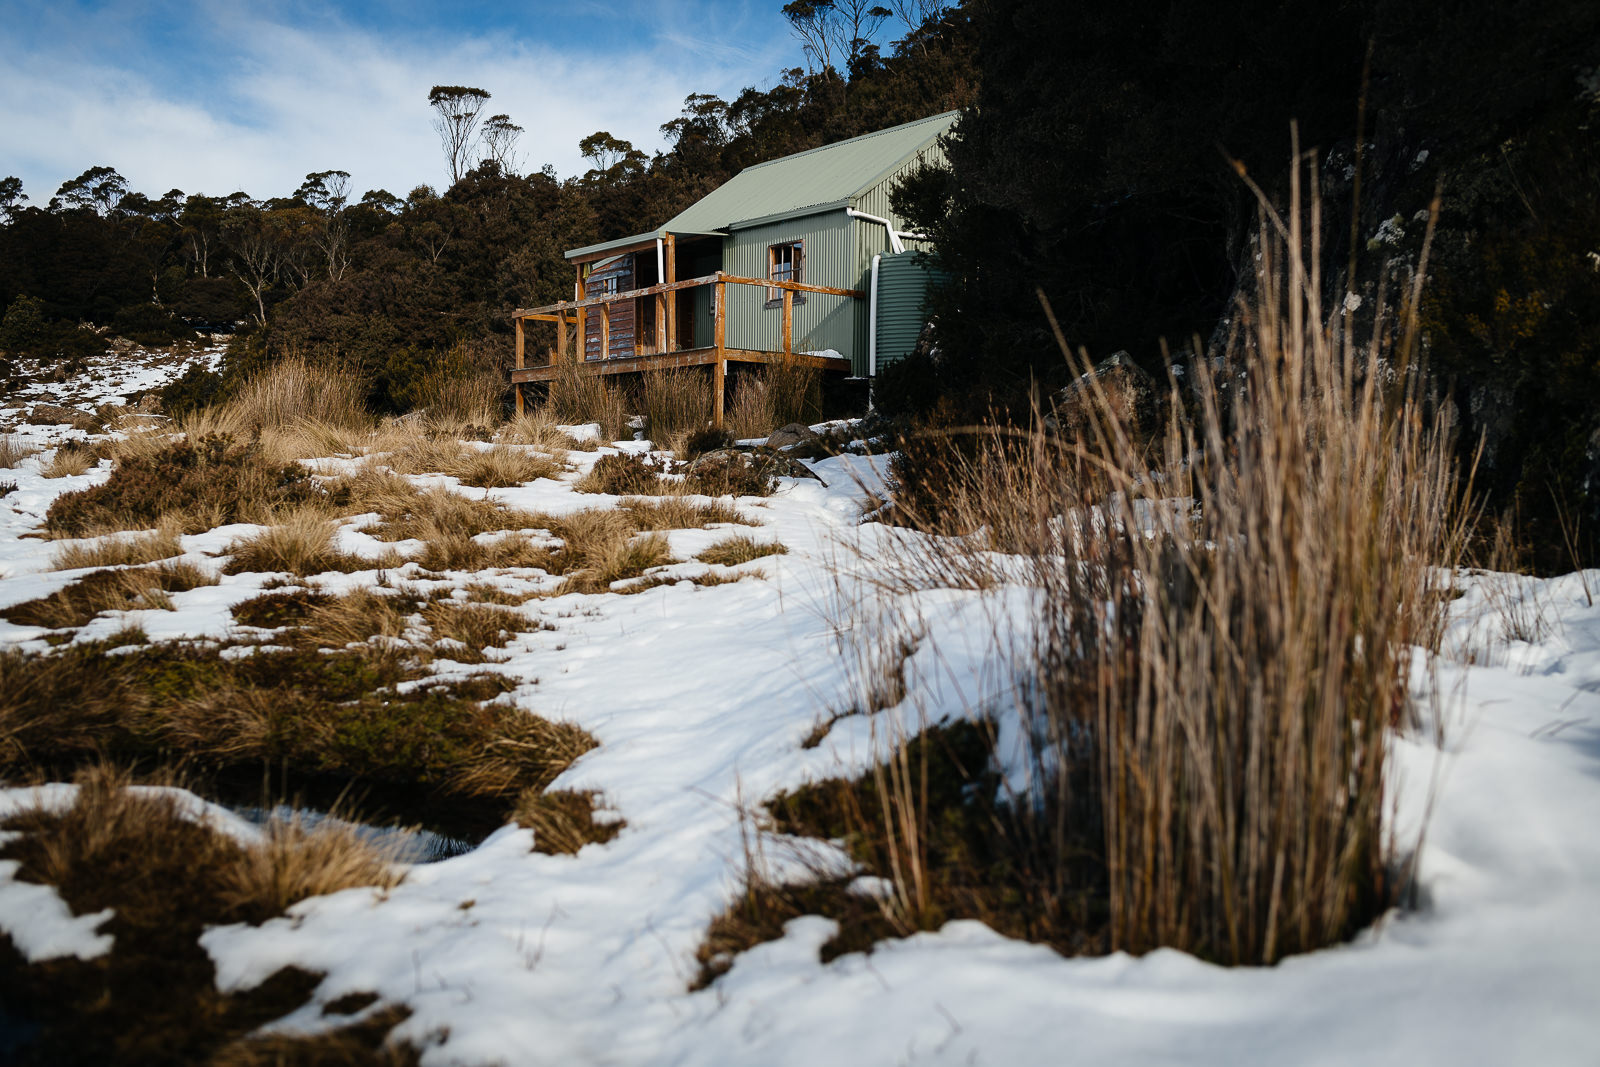 101/365 | Lady Lake Hut on the central plateau